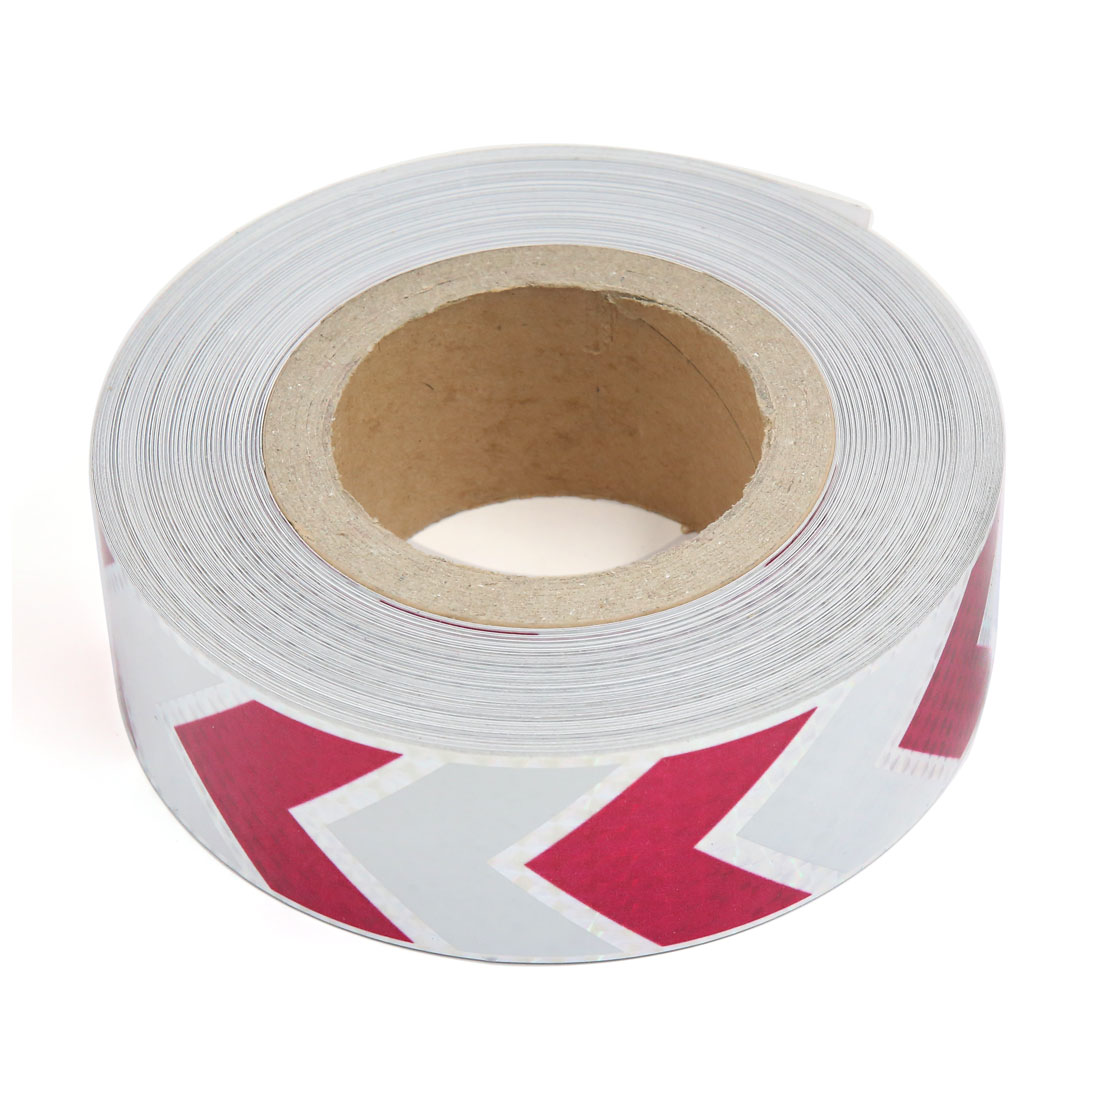 50M Long Arrows Printed Reflective Safety Warning Tape Film Conspicuity Sticker